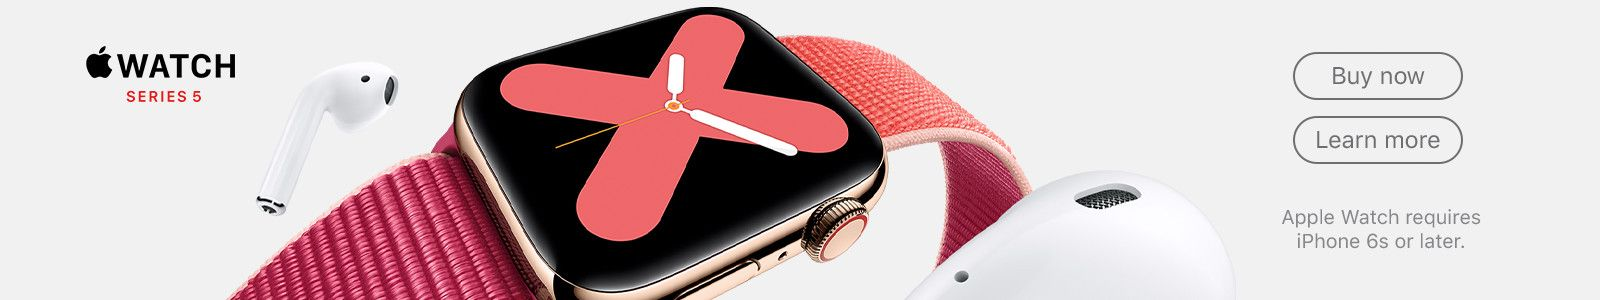 Apple Watch Series 5, Buy now, Learn more, Apple Watch requires ipone 6s or later